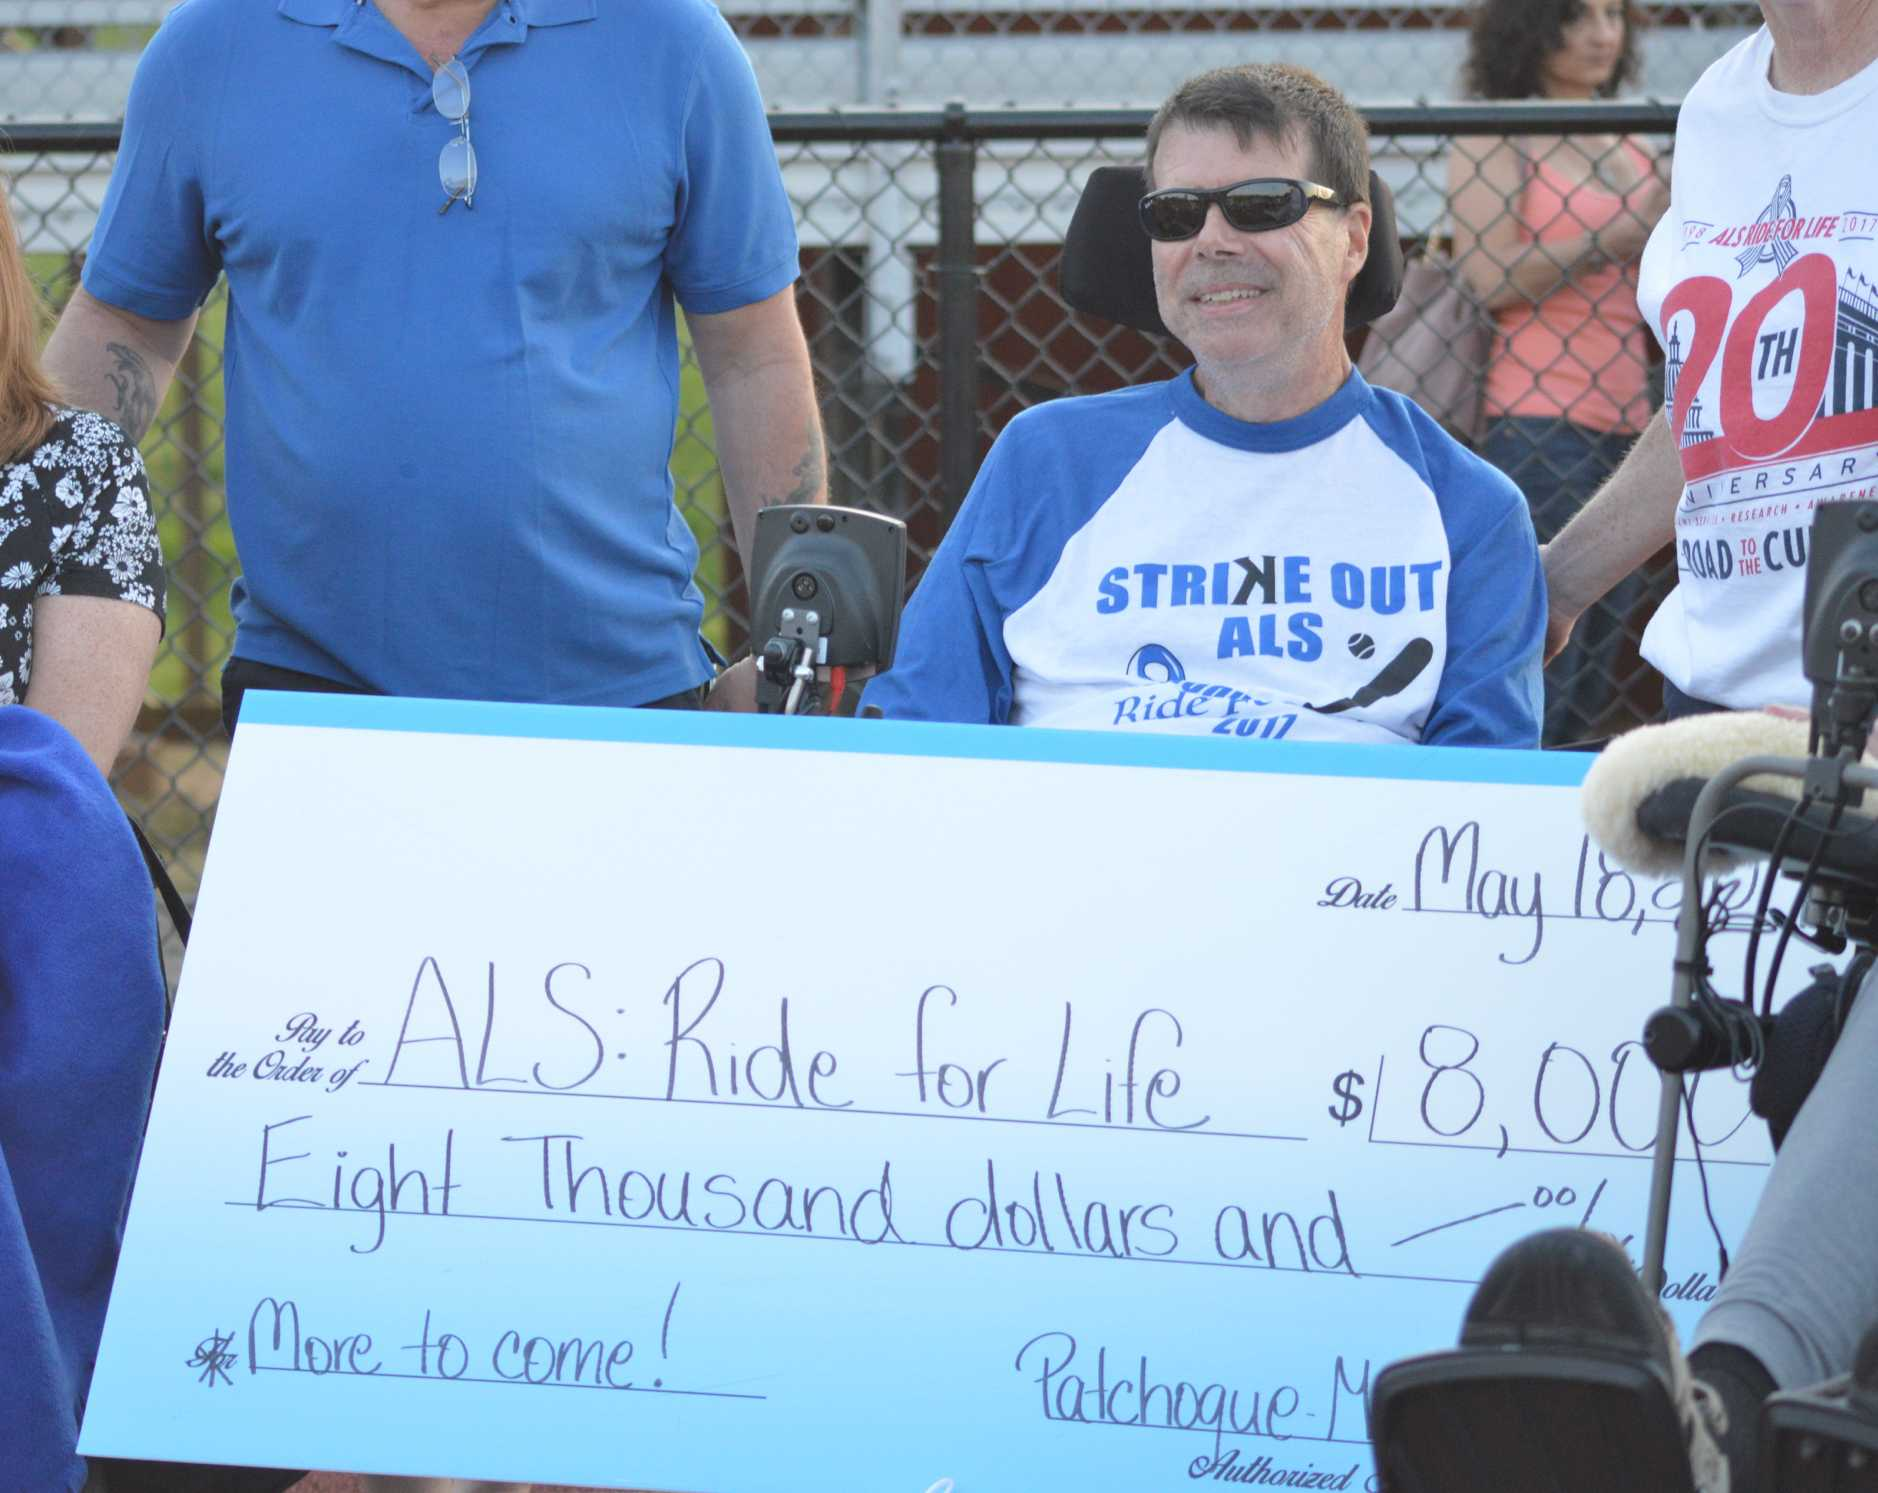 Community Bands Together to 'Strike Out ALS'